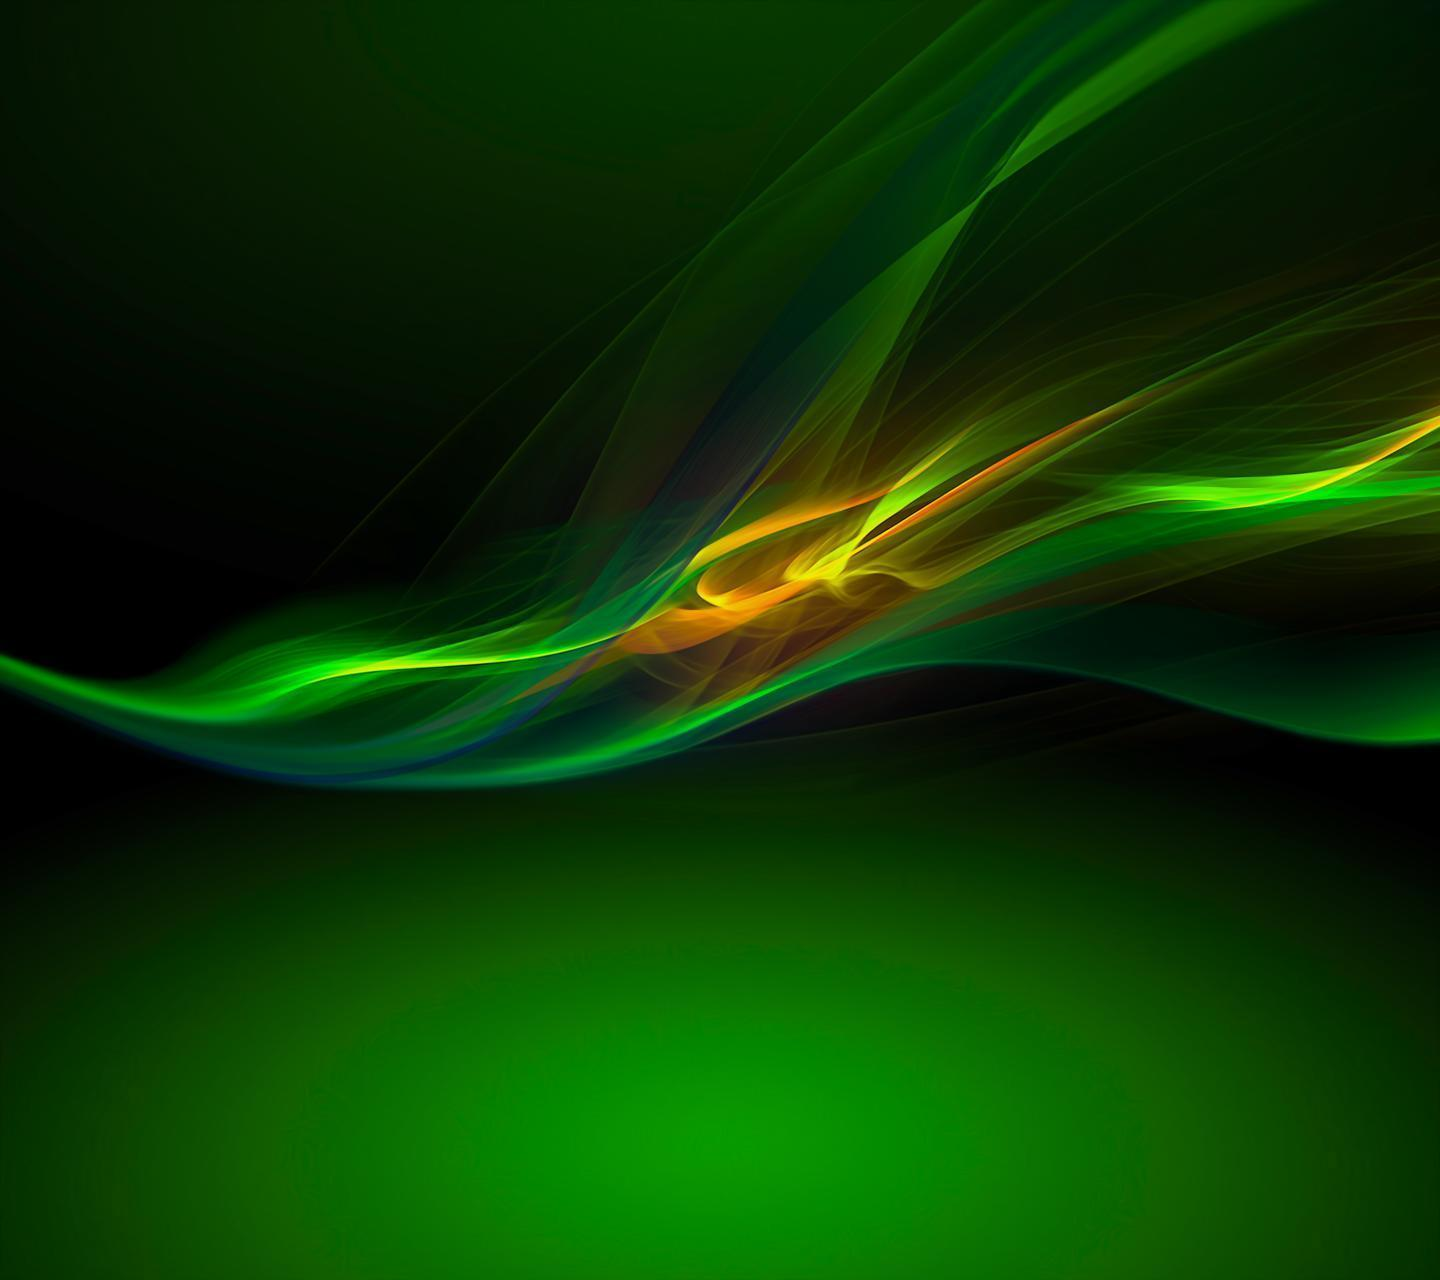 Xperia Tablet Wallpaper Group (0+)